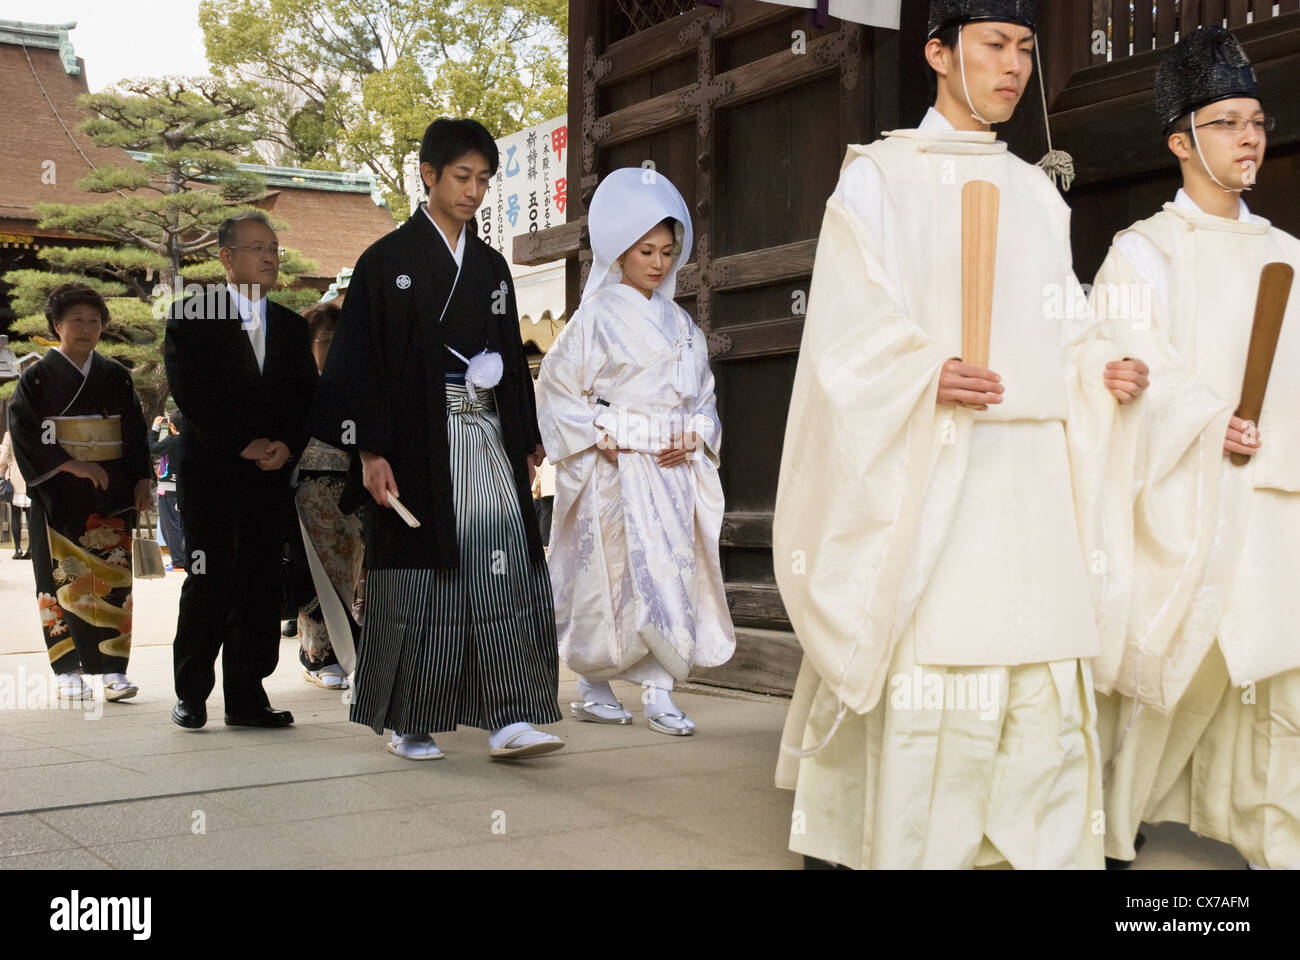 Traditional Japanese Wedding.Traditional Japanese Wedding Walking Through The Temple Gate Kyoto